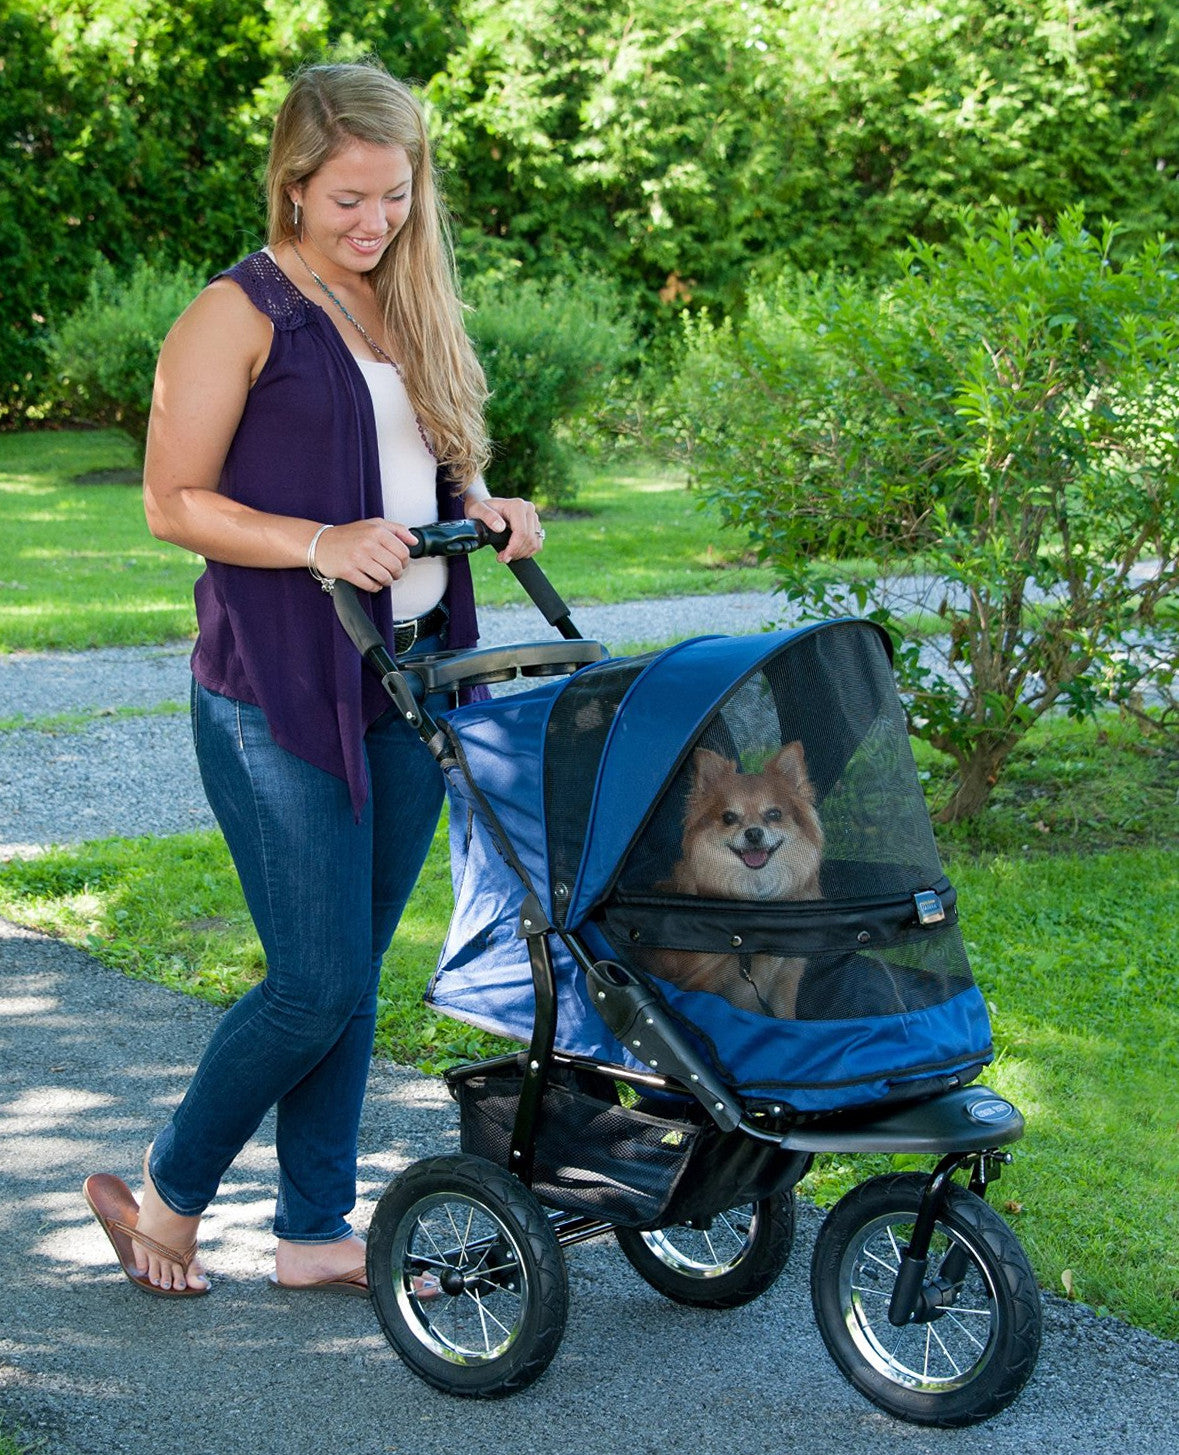 ad3d2cf028b Pet Gear Jogger No-Zip Pet Stroller for Jogging   Running with Dogs ...